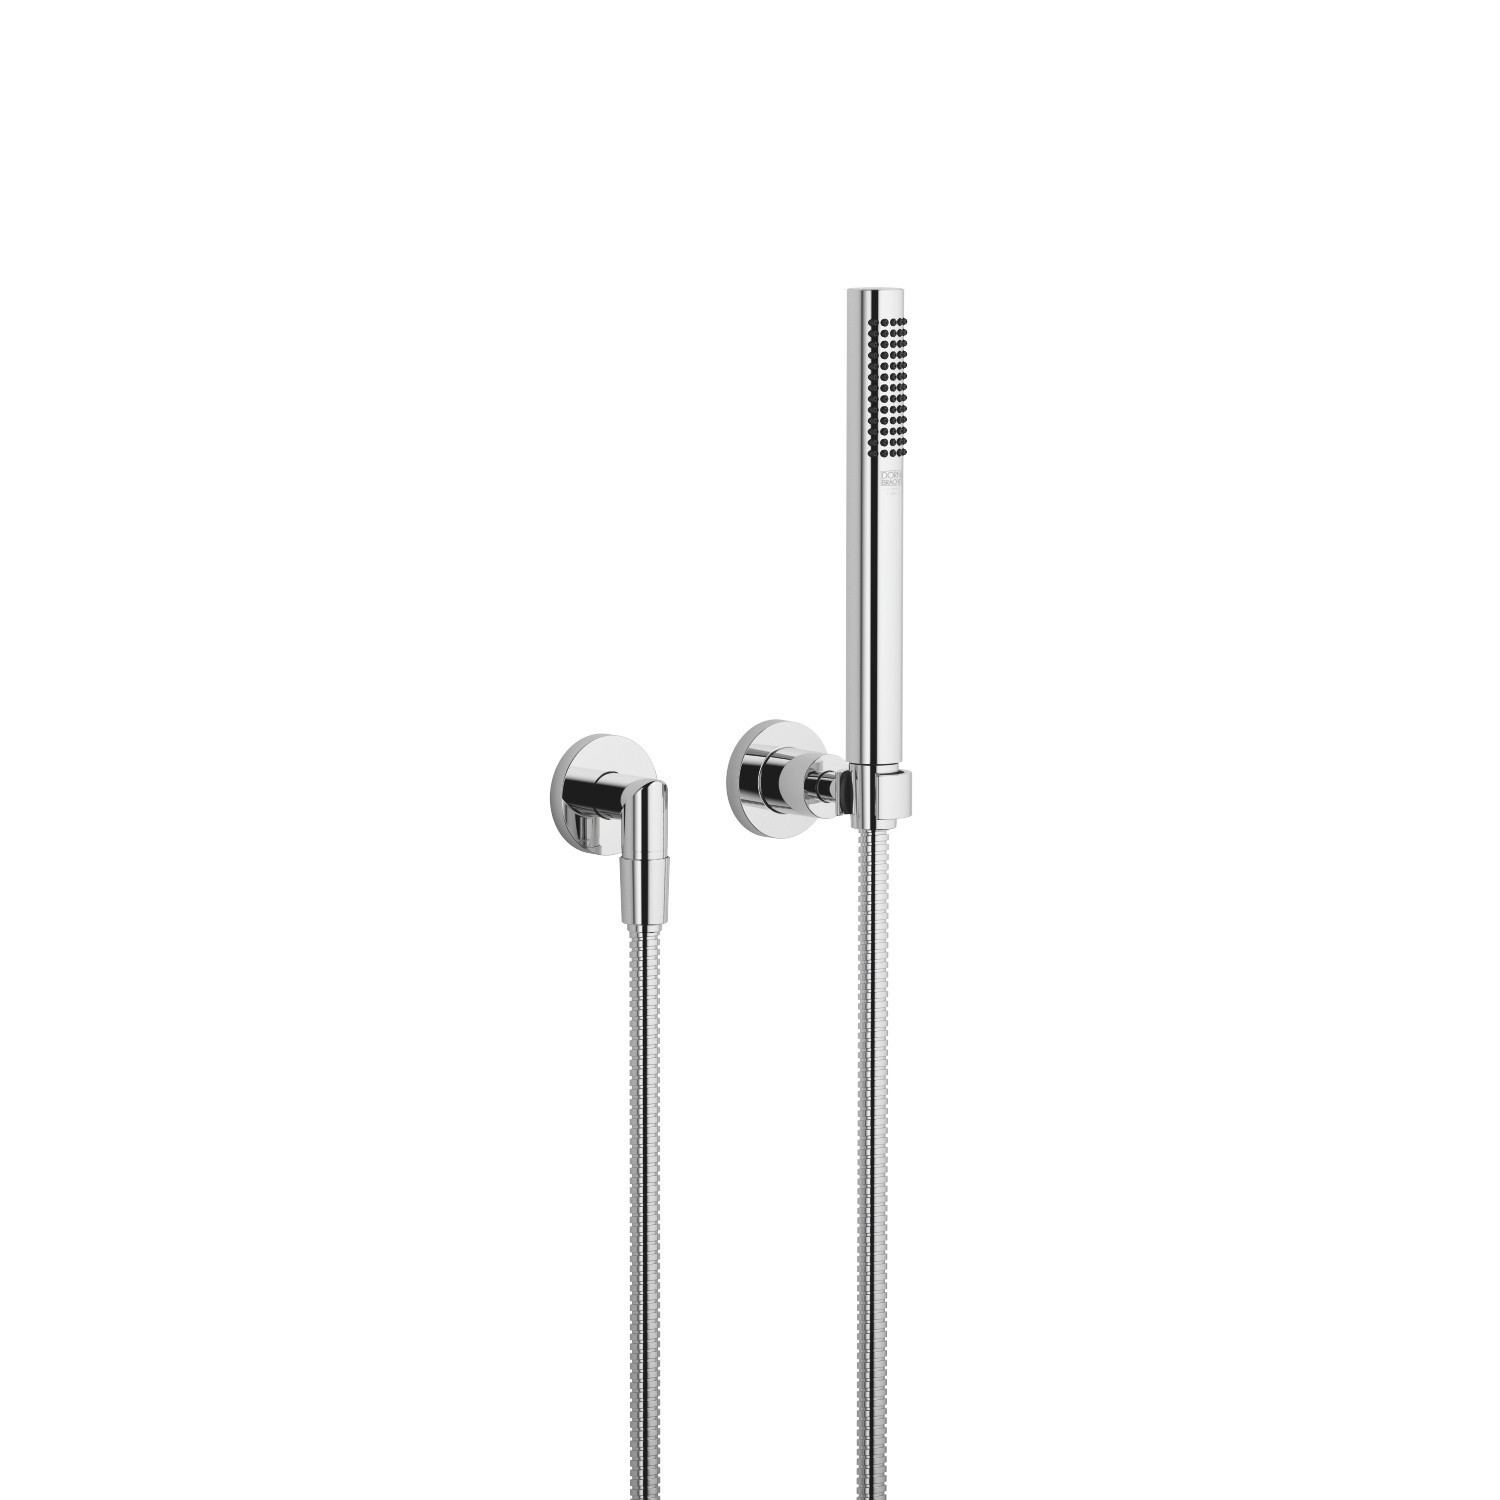 DORNBRACHT 27802892-0010 TARA WALL MOUNT SINGLE-FUNCTION ROUND HAND SHOWER SET WITH INDIVIDUAL FLANGES